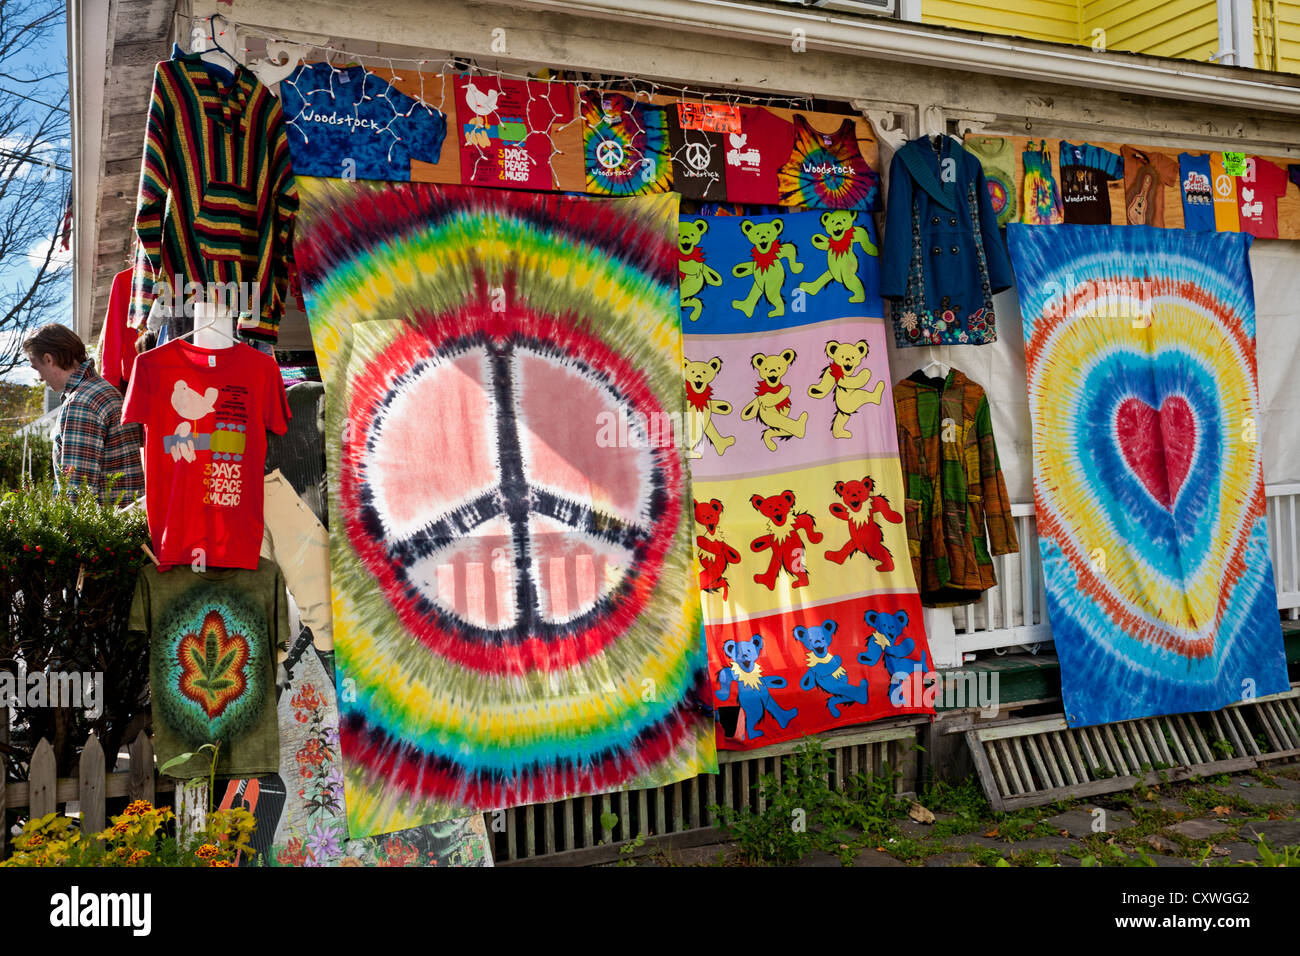 A 'head shop' in Woodstock, New York State, in the Catskills - Stock Image